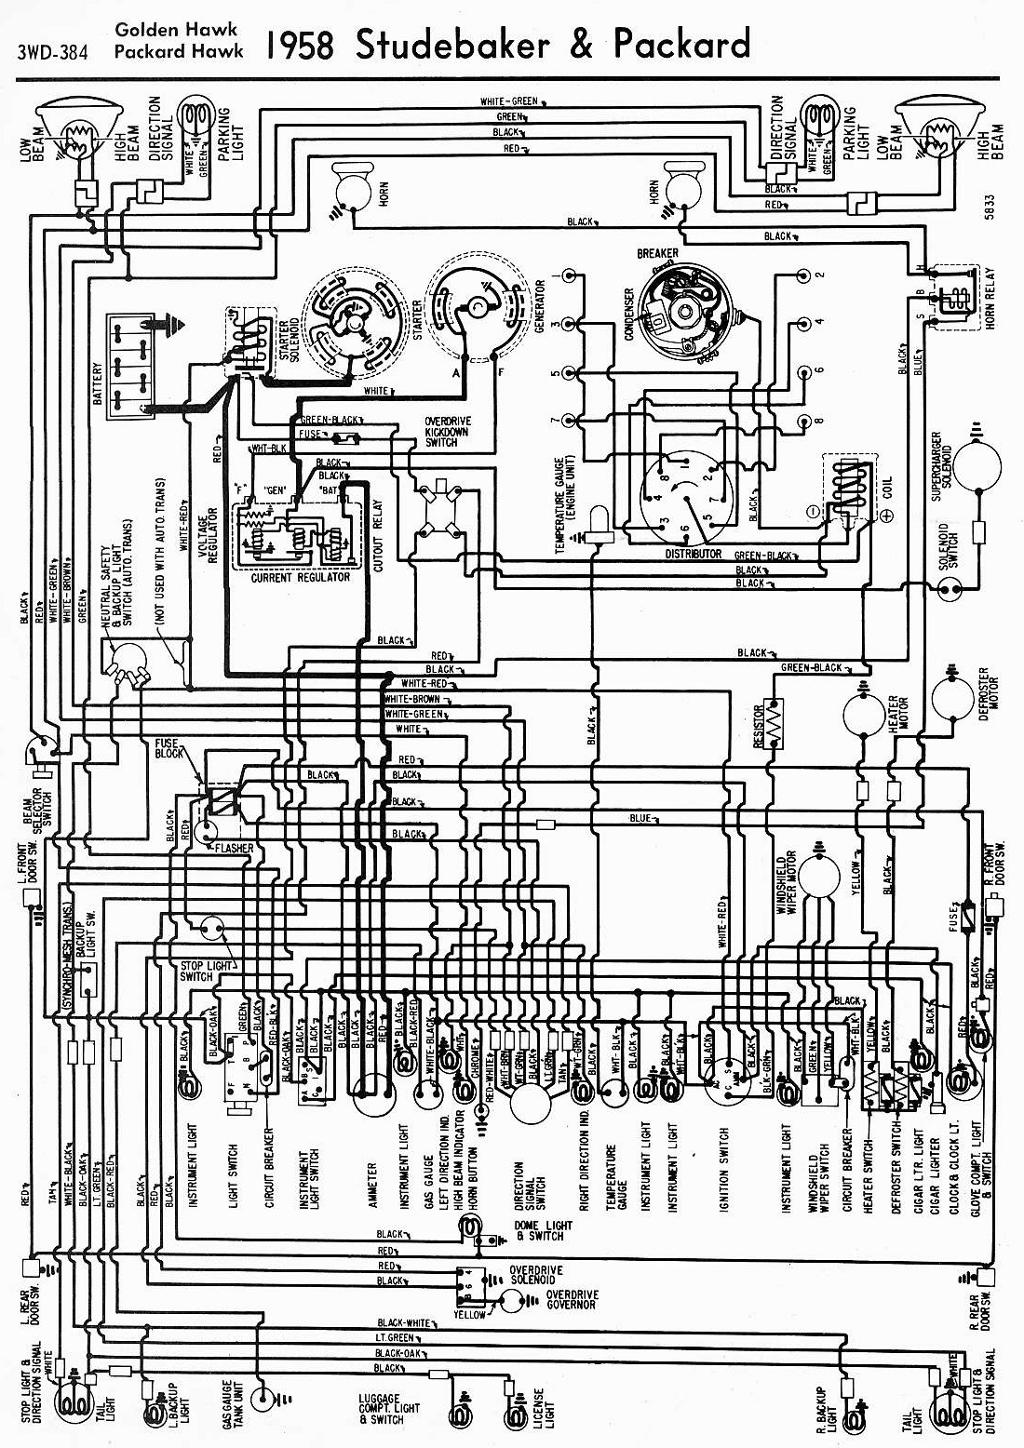 hight resolution of 1947 packard wiring diagram wiring diagram database 1947 packard wiring diagram